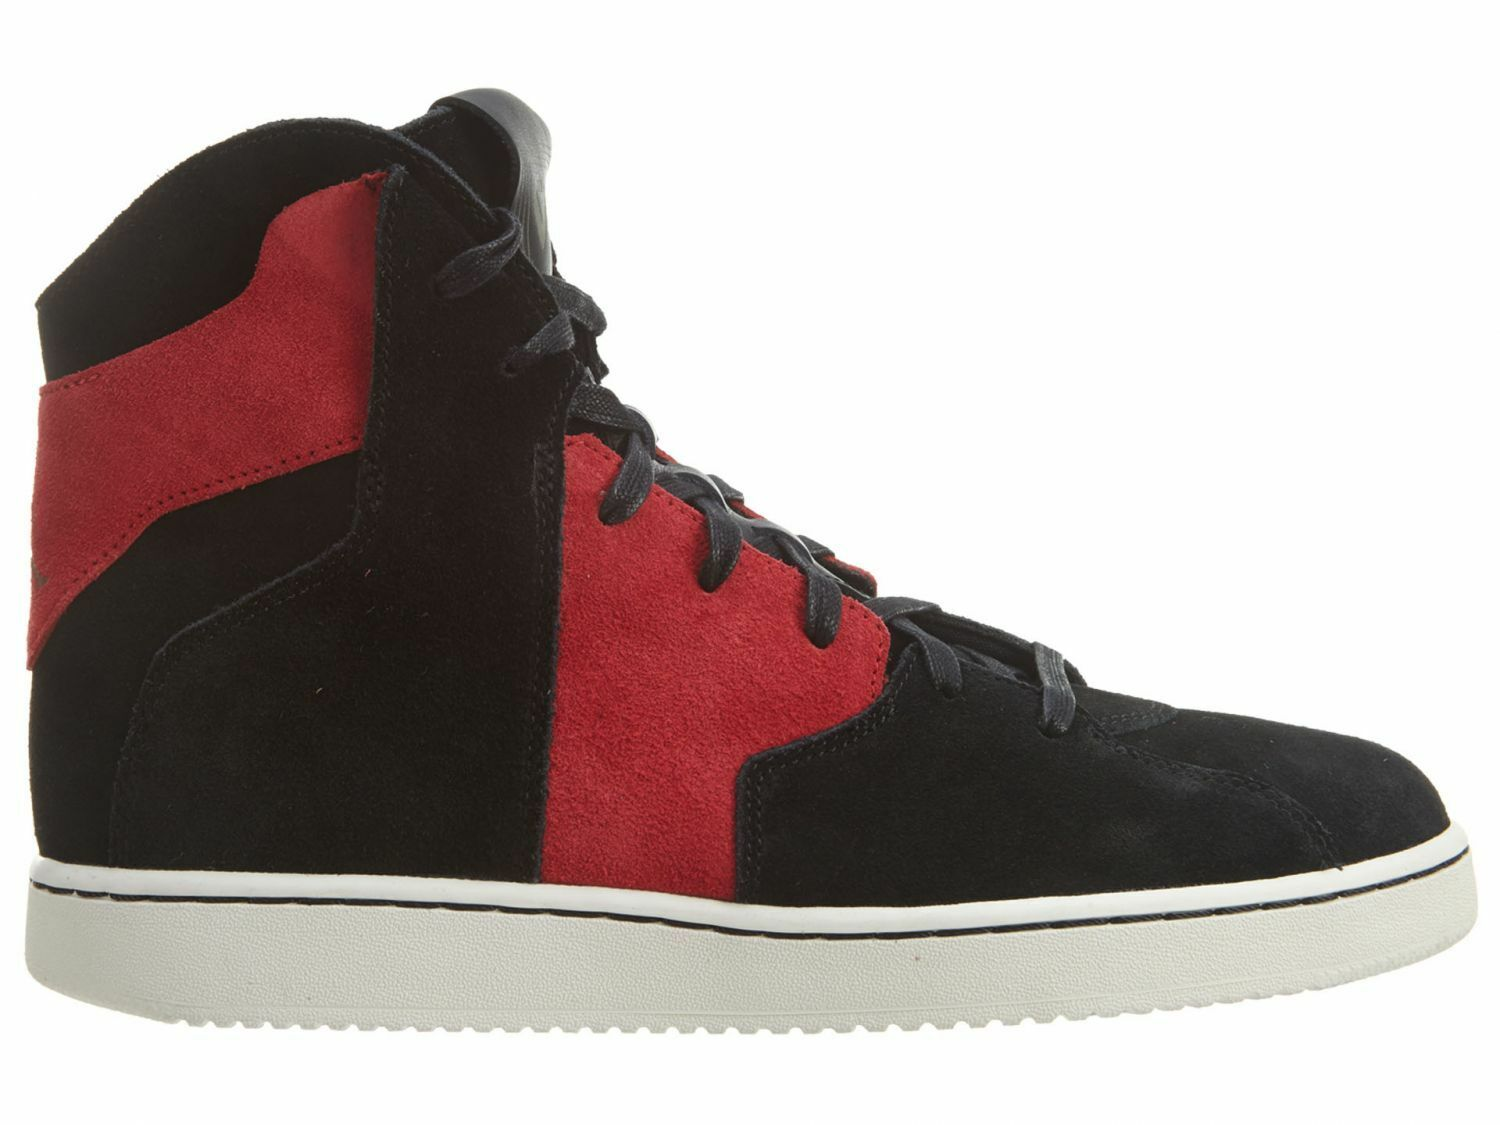 Jordan Westbrook 0.2 Banned Mens 854563-001 Black Gym Red Suede Shoes Comfortable The most popular shoes for men and women